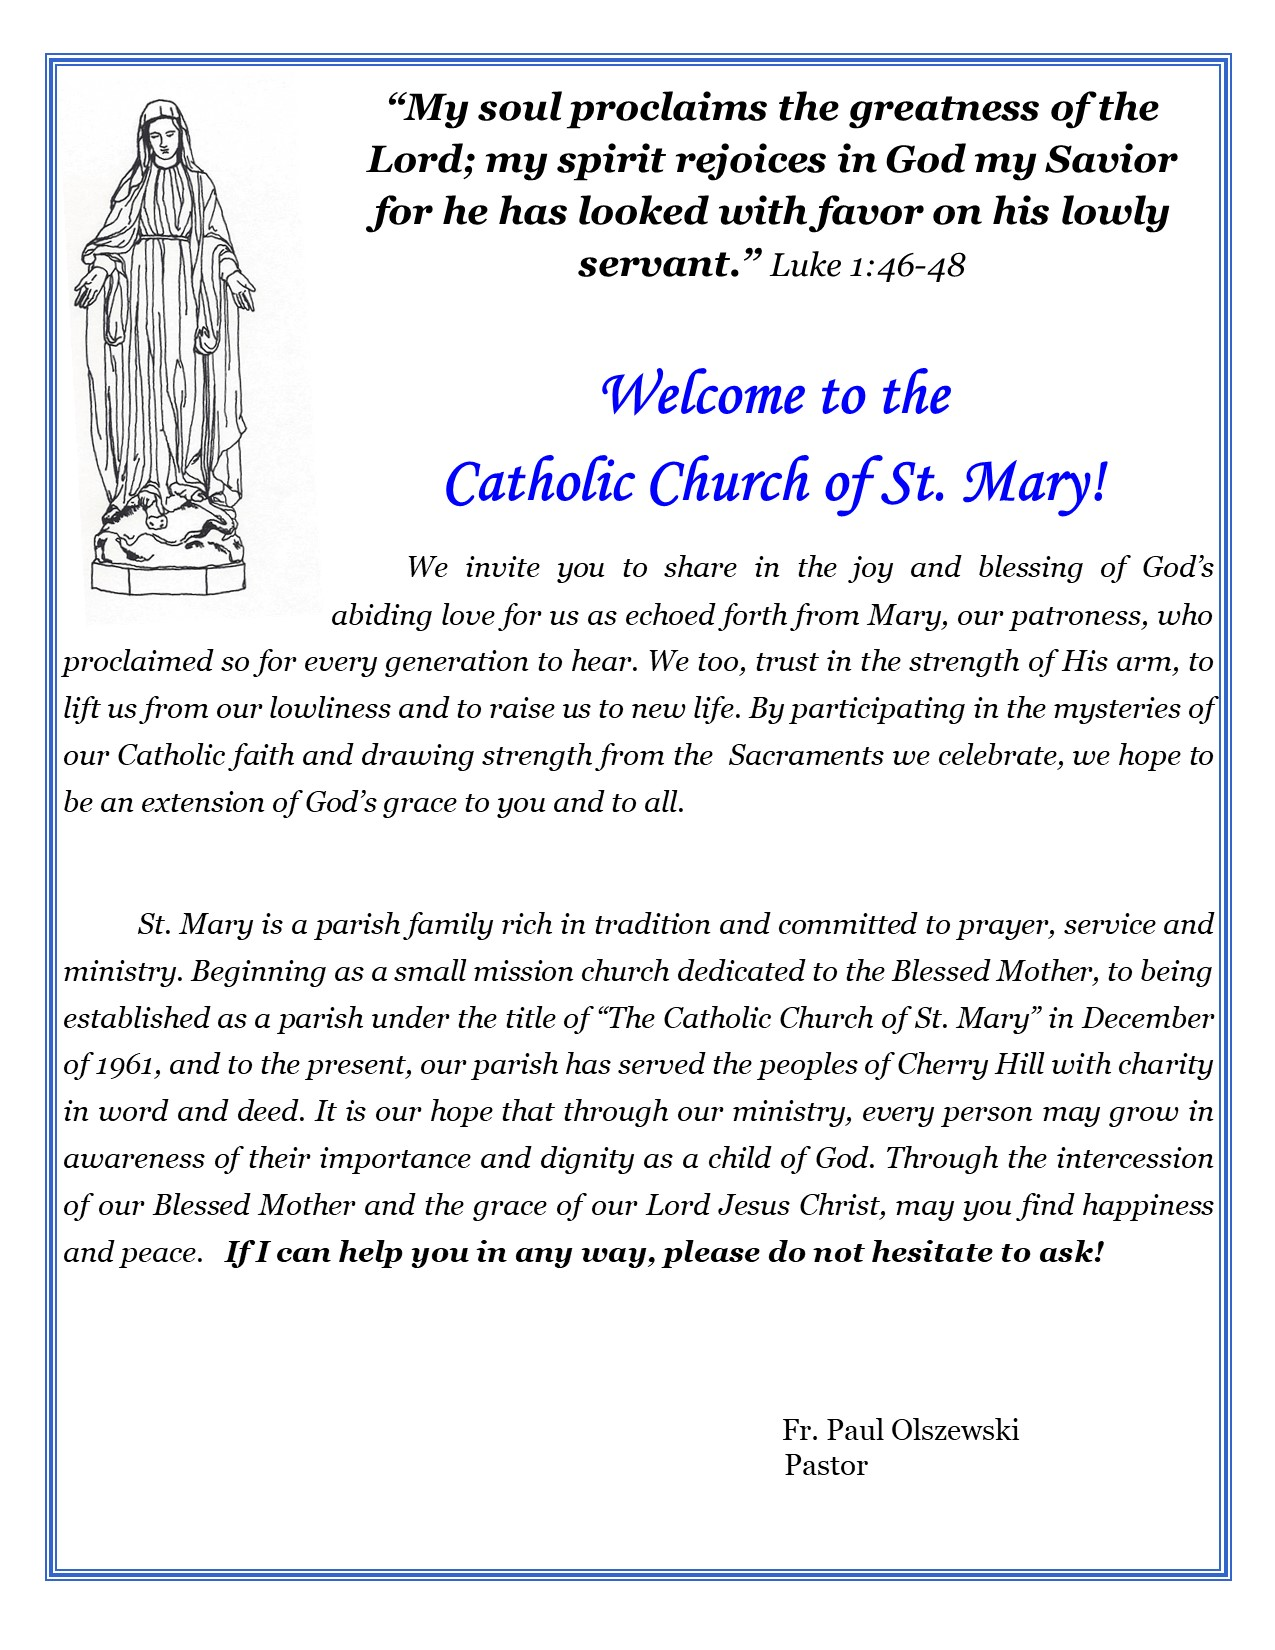 The Catholic Church of St Mary - Message from Fr  Paul